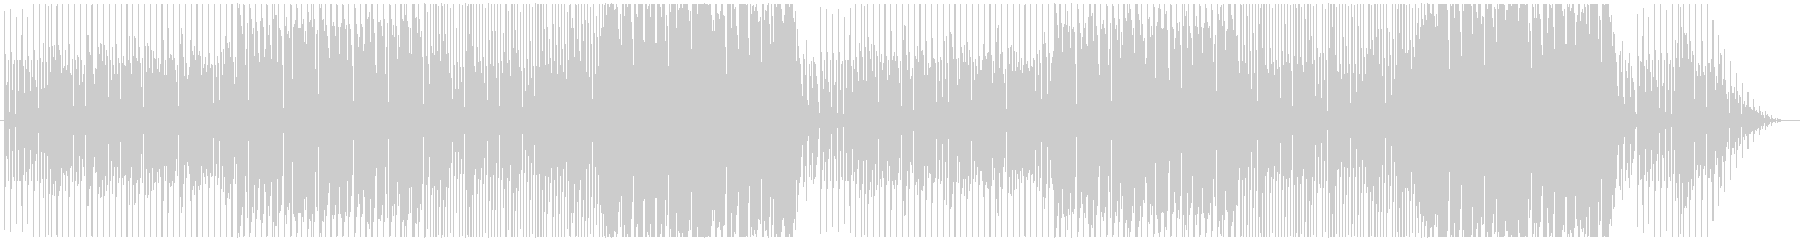 Halloween-like songs with a suspicious atmosphere's unreproduced waveform